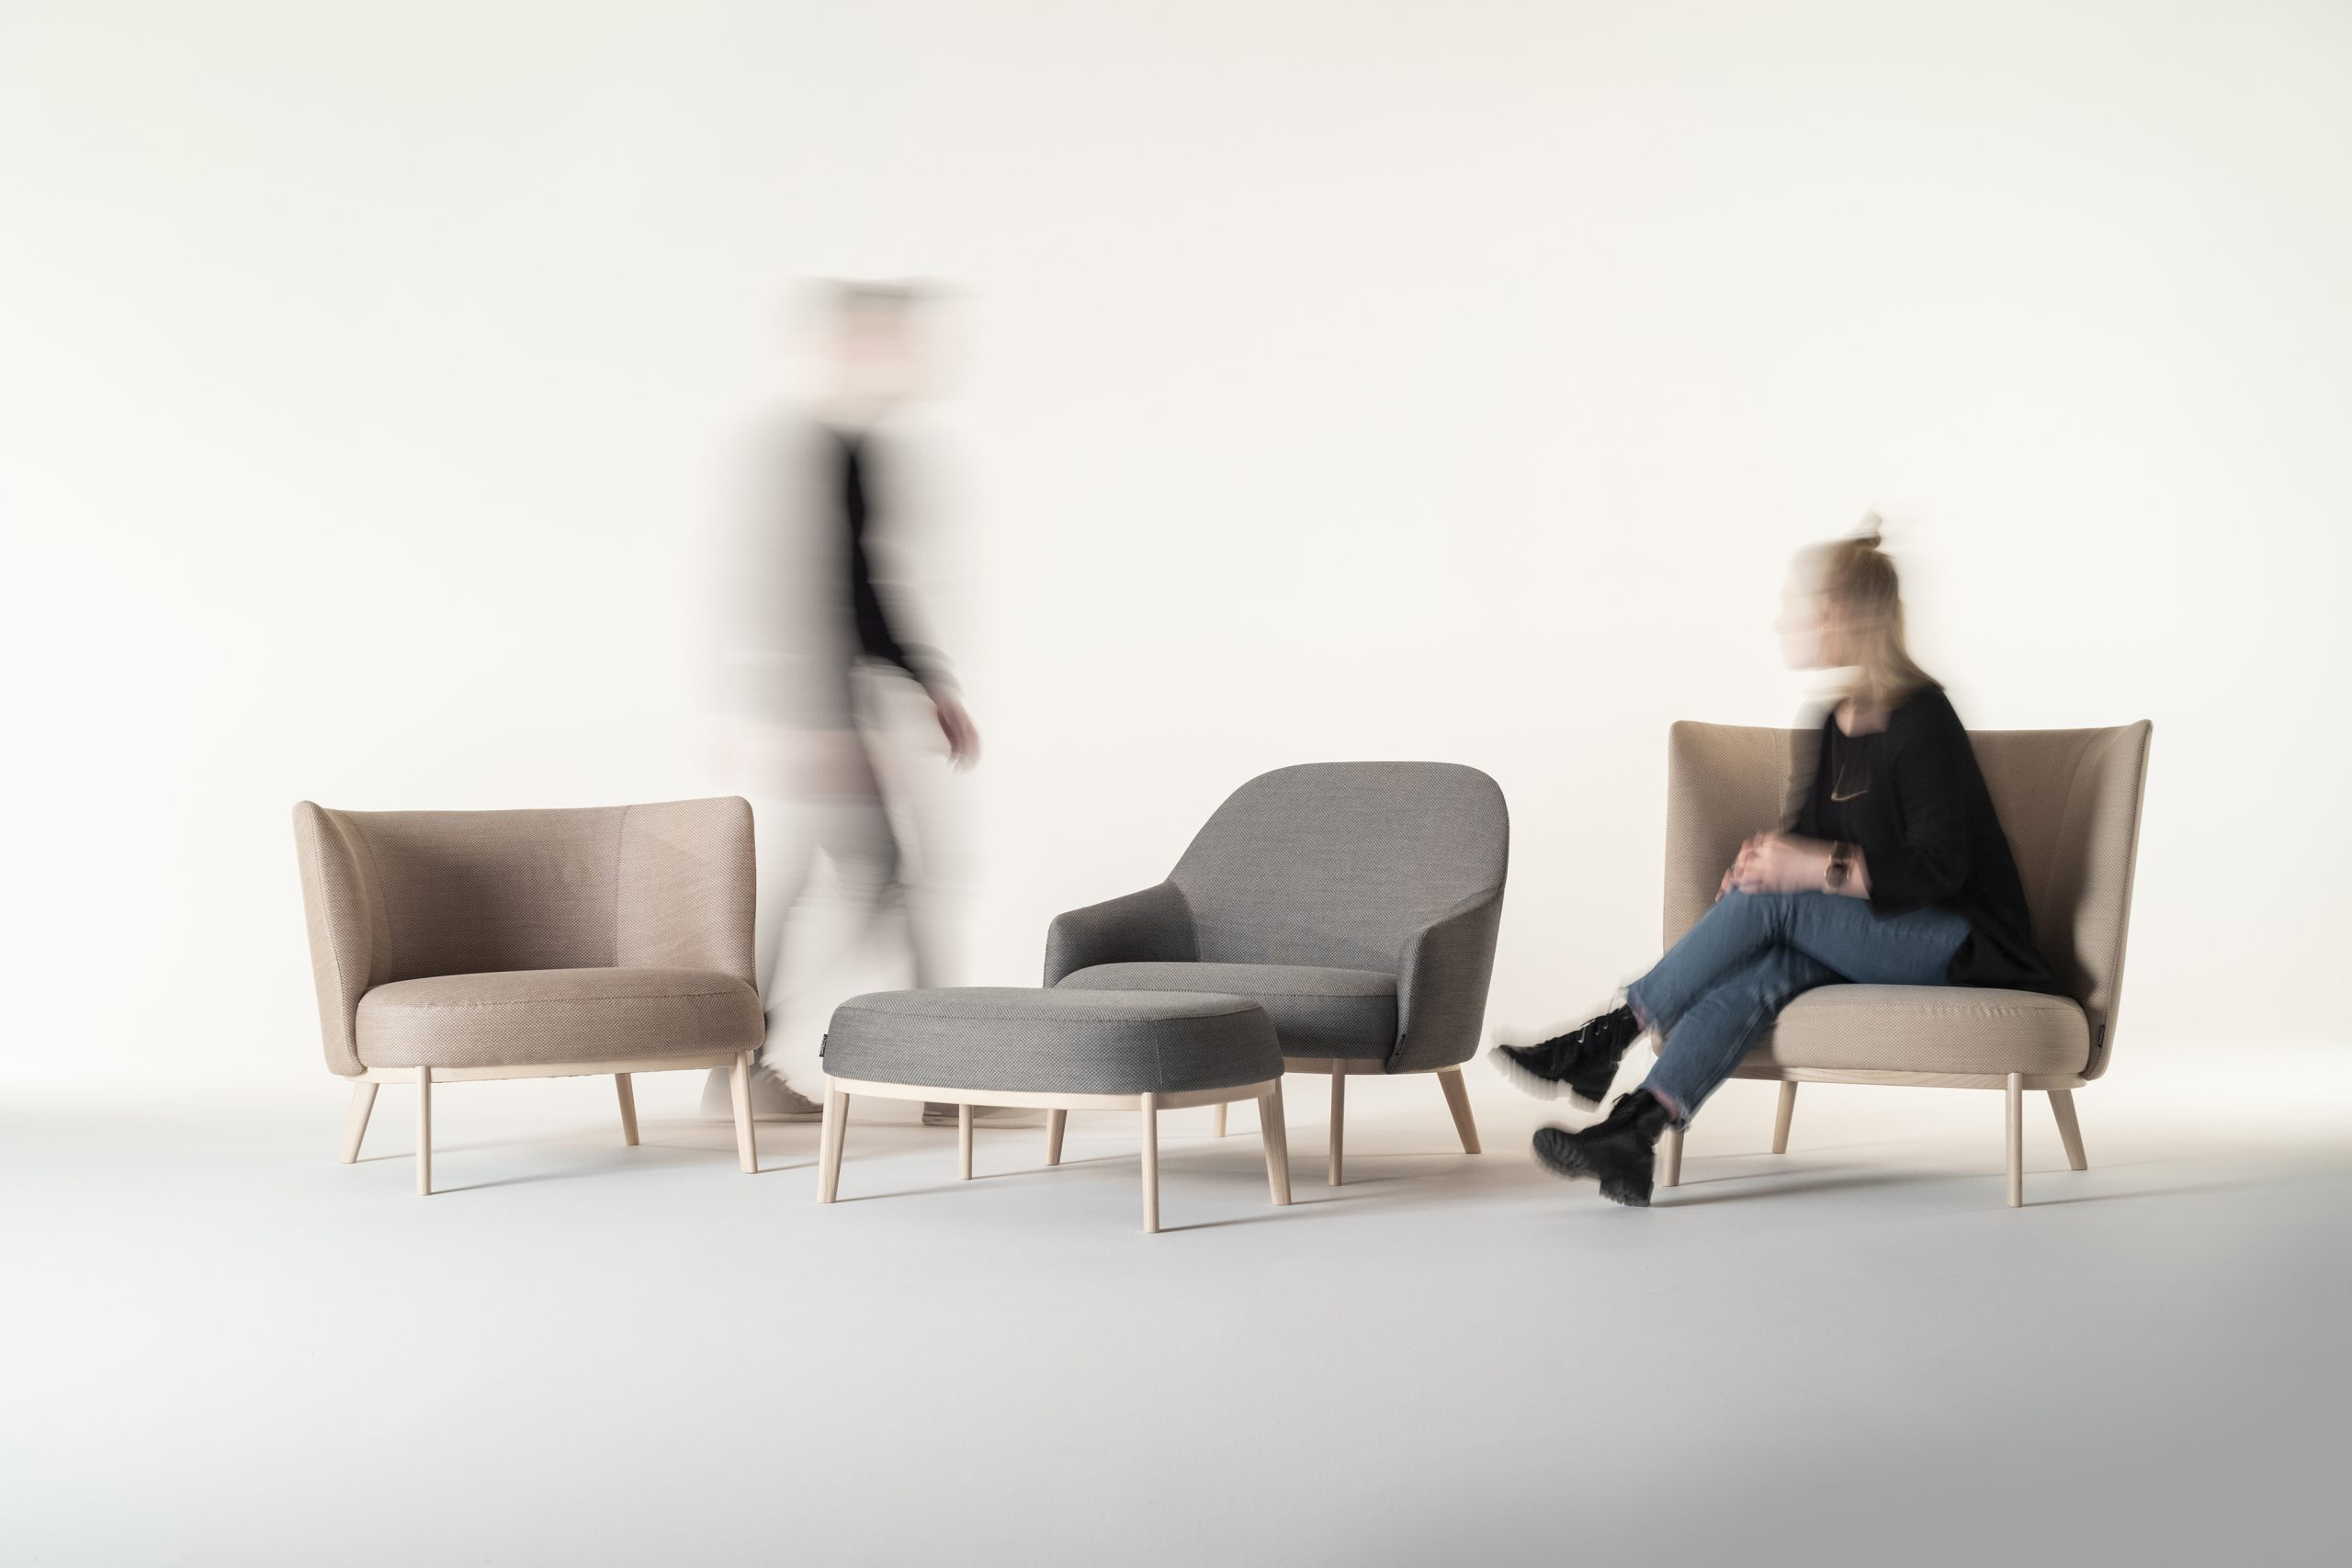 Shift Wood lounge chairs and Ottoman designed by Debiasi Sandri for Offecct